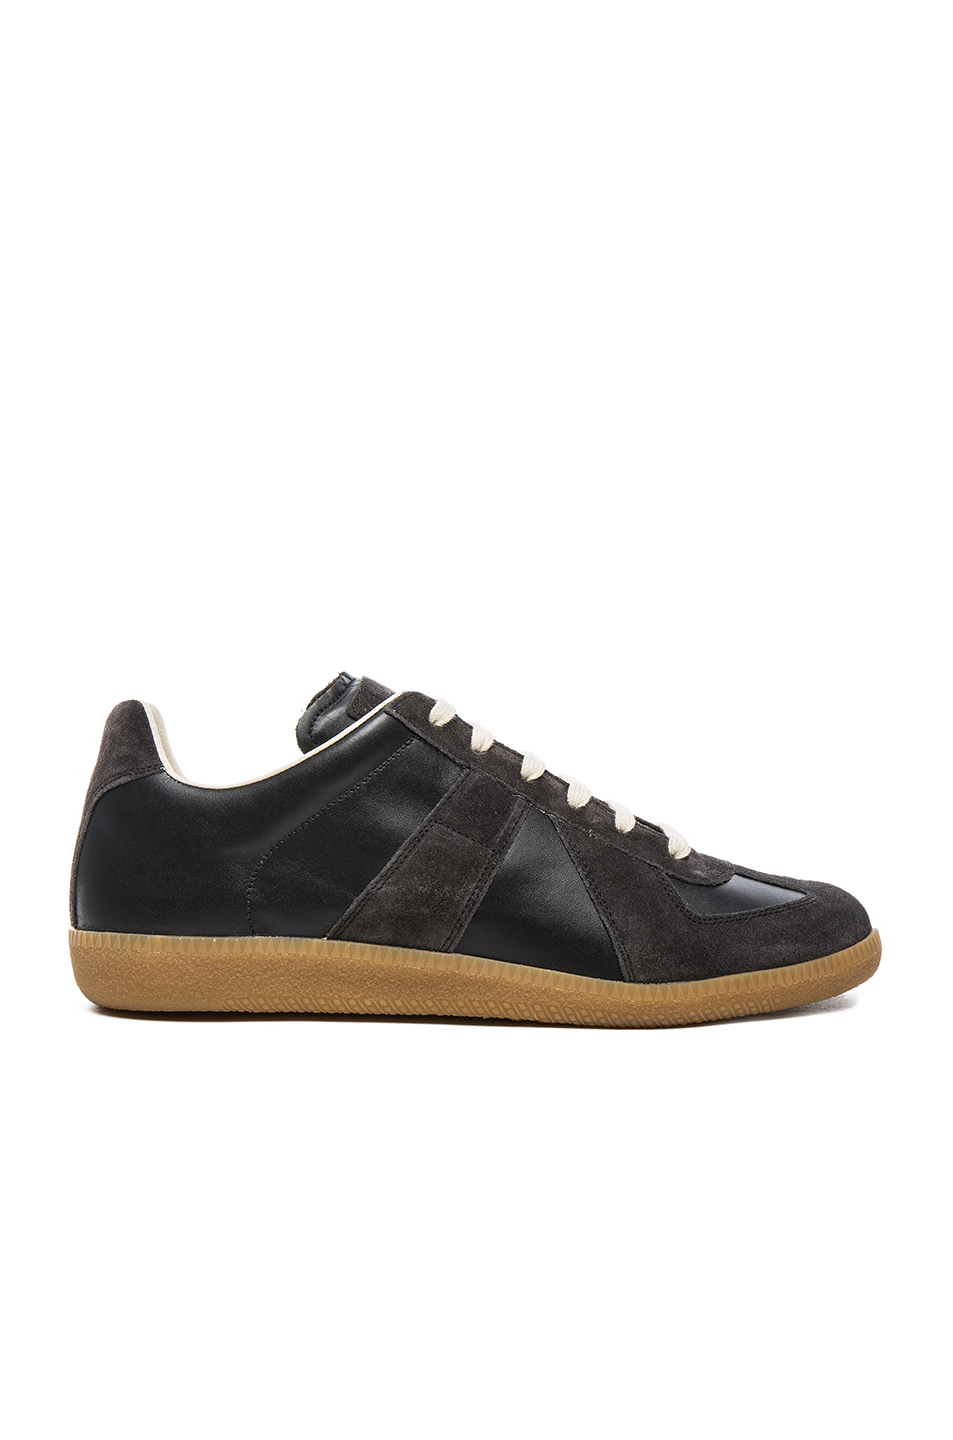 maison margiela calfskin suede replica sneakers in black for men lyst. Black Bedroom Furniture Sets. Home Design Ideas